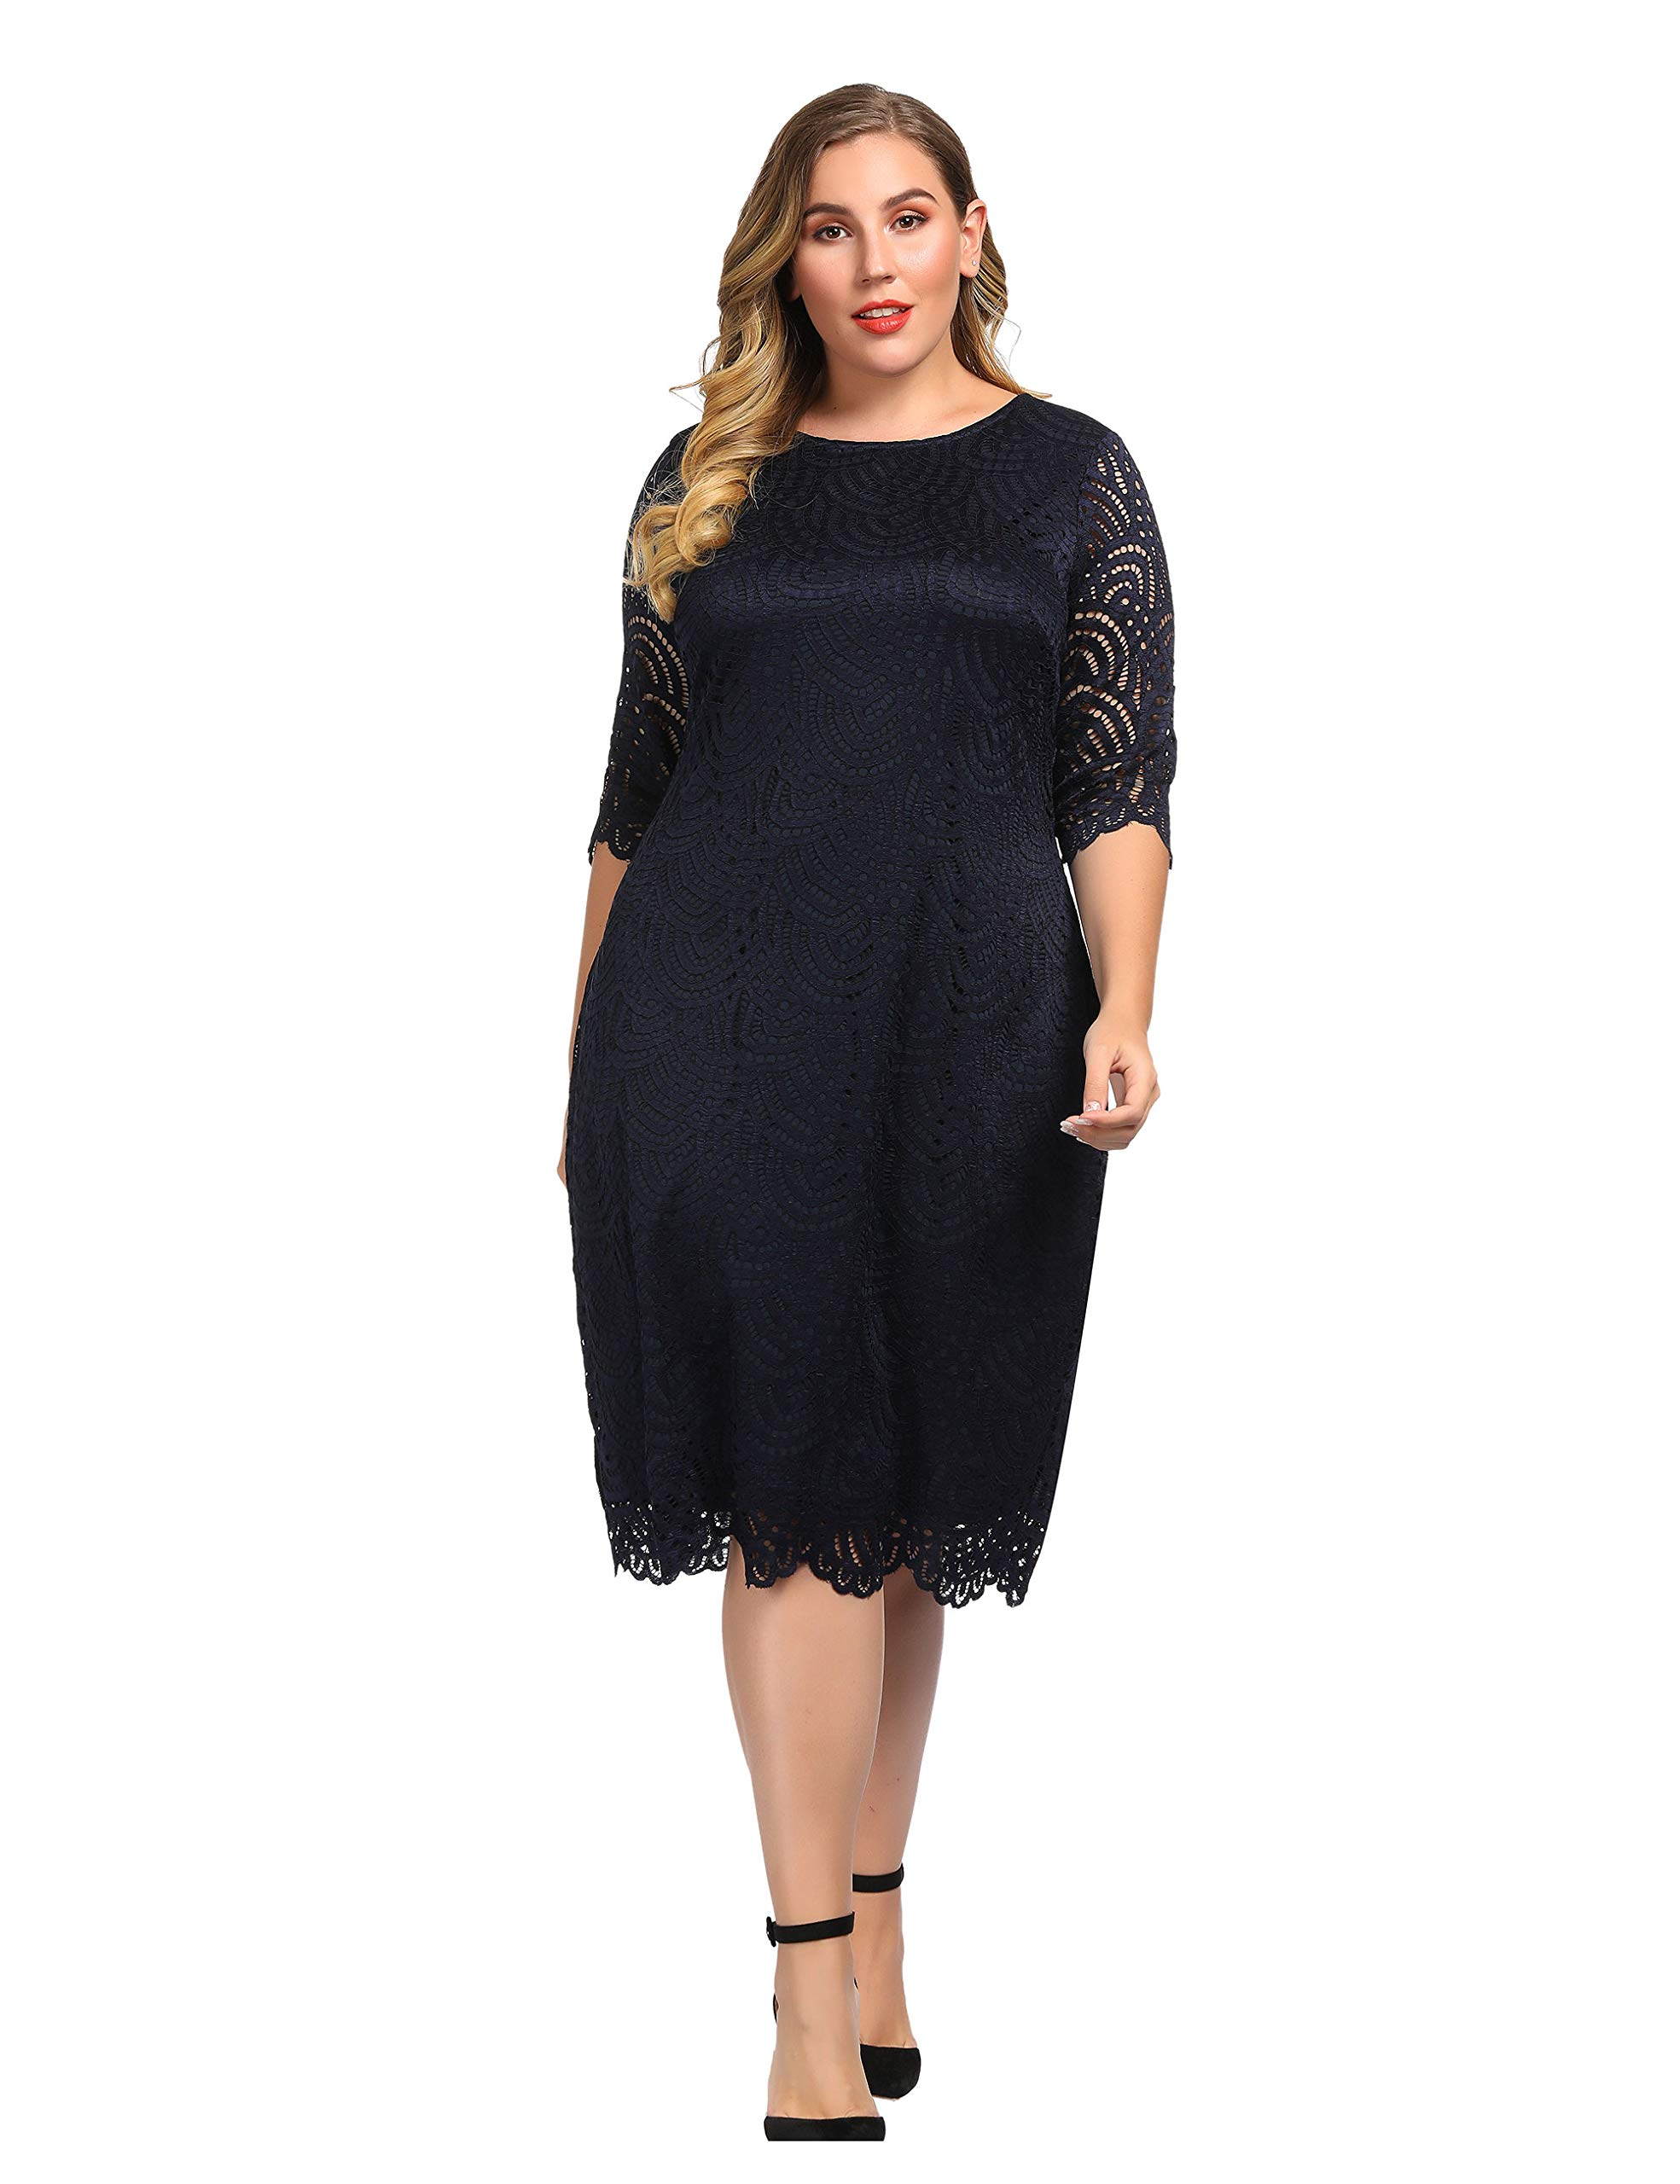 Chicwe Women\'s Lined Stretch Lace Plus Size Shift Dress with Scalloped Hem  and Cuff Navy 3X